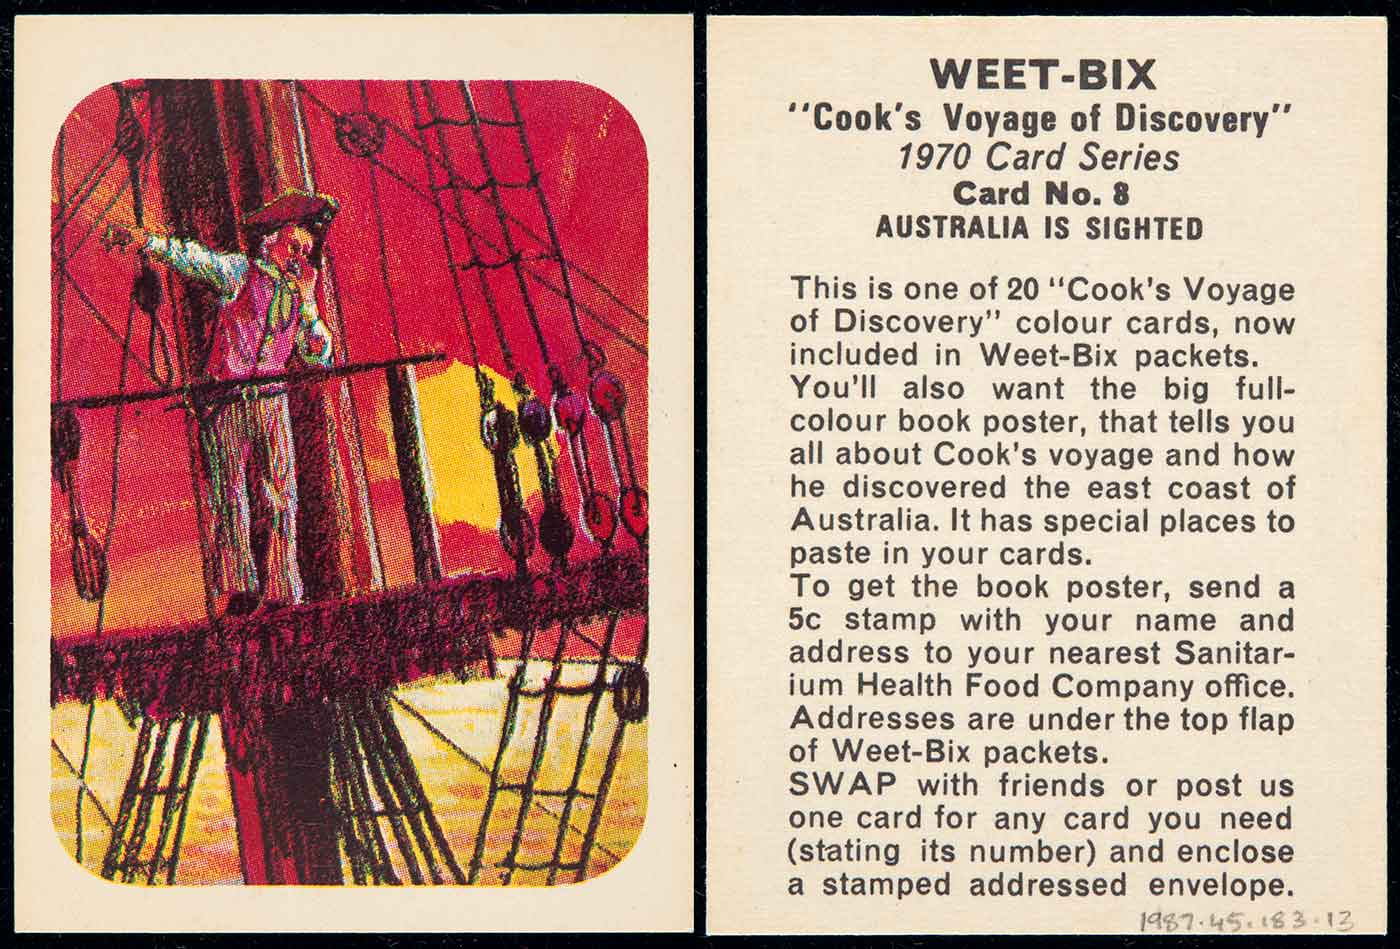 Swap card from 1970, collected from a Weet-bix cereal packet, titled 'Card No 8, AUSTRALIA IS SIGHTED' Description	A swap card collected from a Weetbix cereal packet. The card is number 8 in a series of 20. The card features a colour illustration of a man in the rigging of a sailing ship. The background features a yellow sun in a red sky with the ocean reflecting yellow. Text on the reverse side of the card reads 'WEET-BIX /